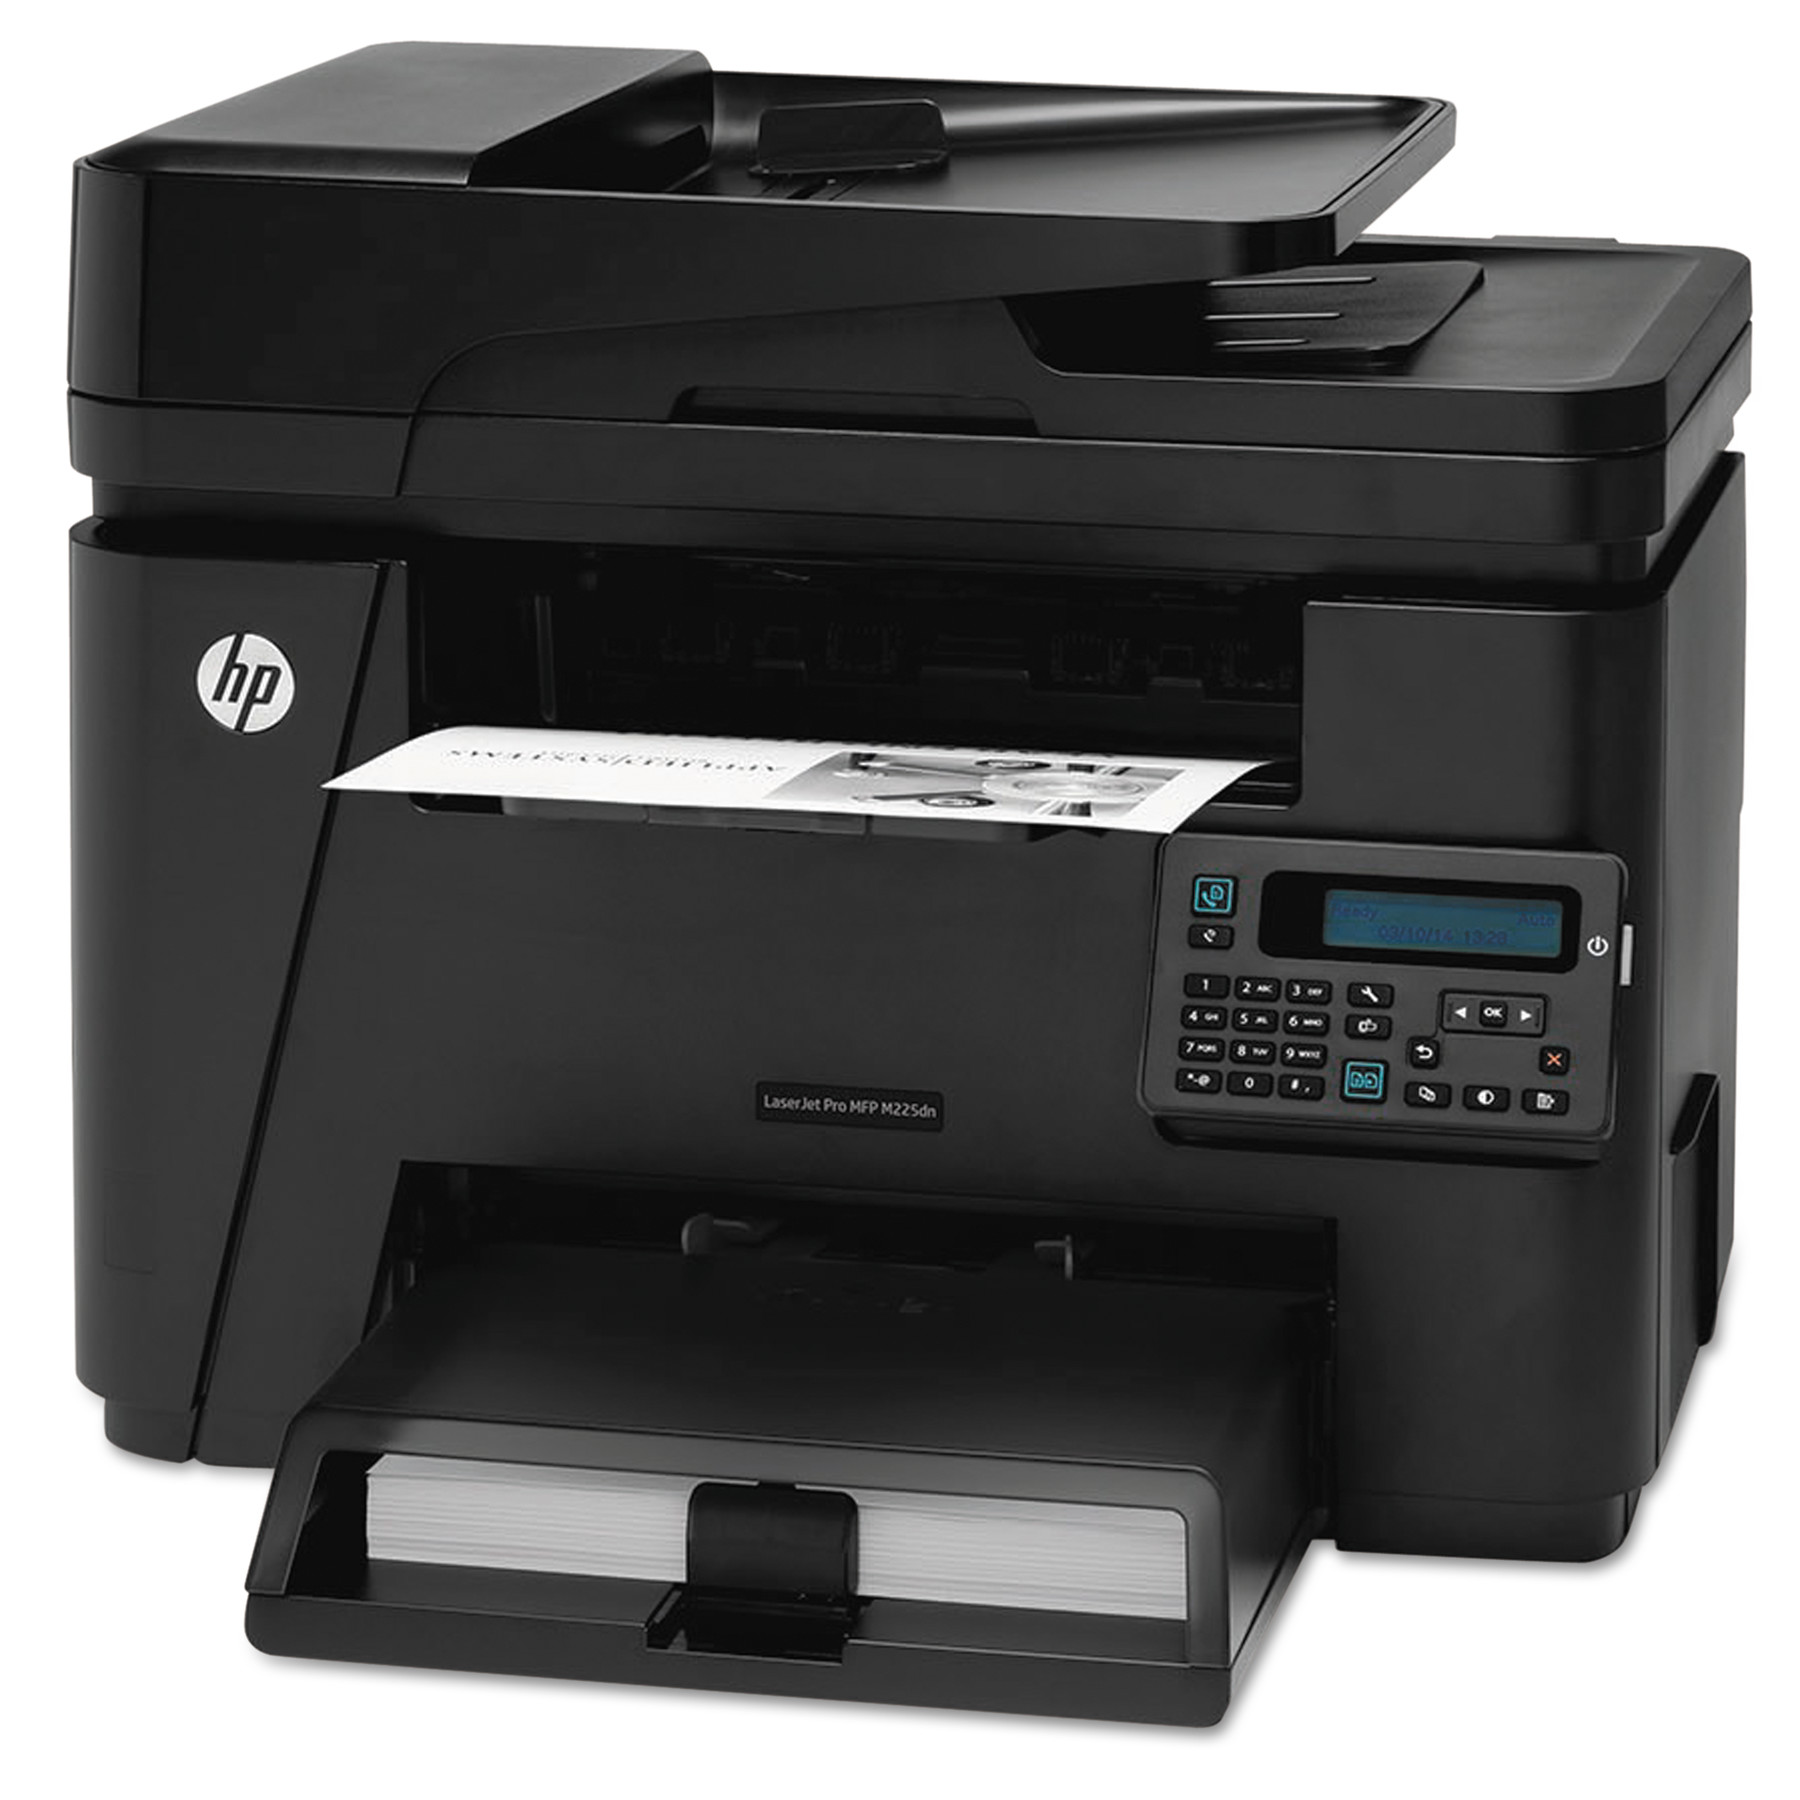 HP LaserJet Pro MFP M225DN Multifunction Laser Printer, Copy/Fax/Print/Scan